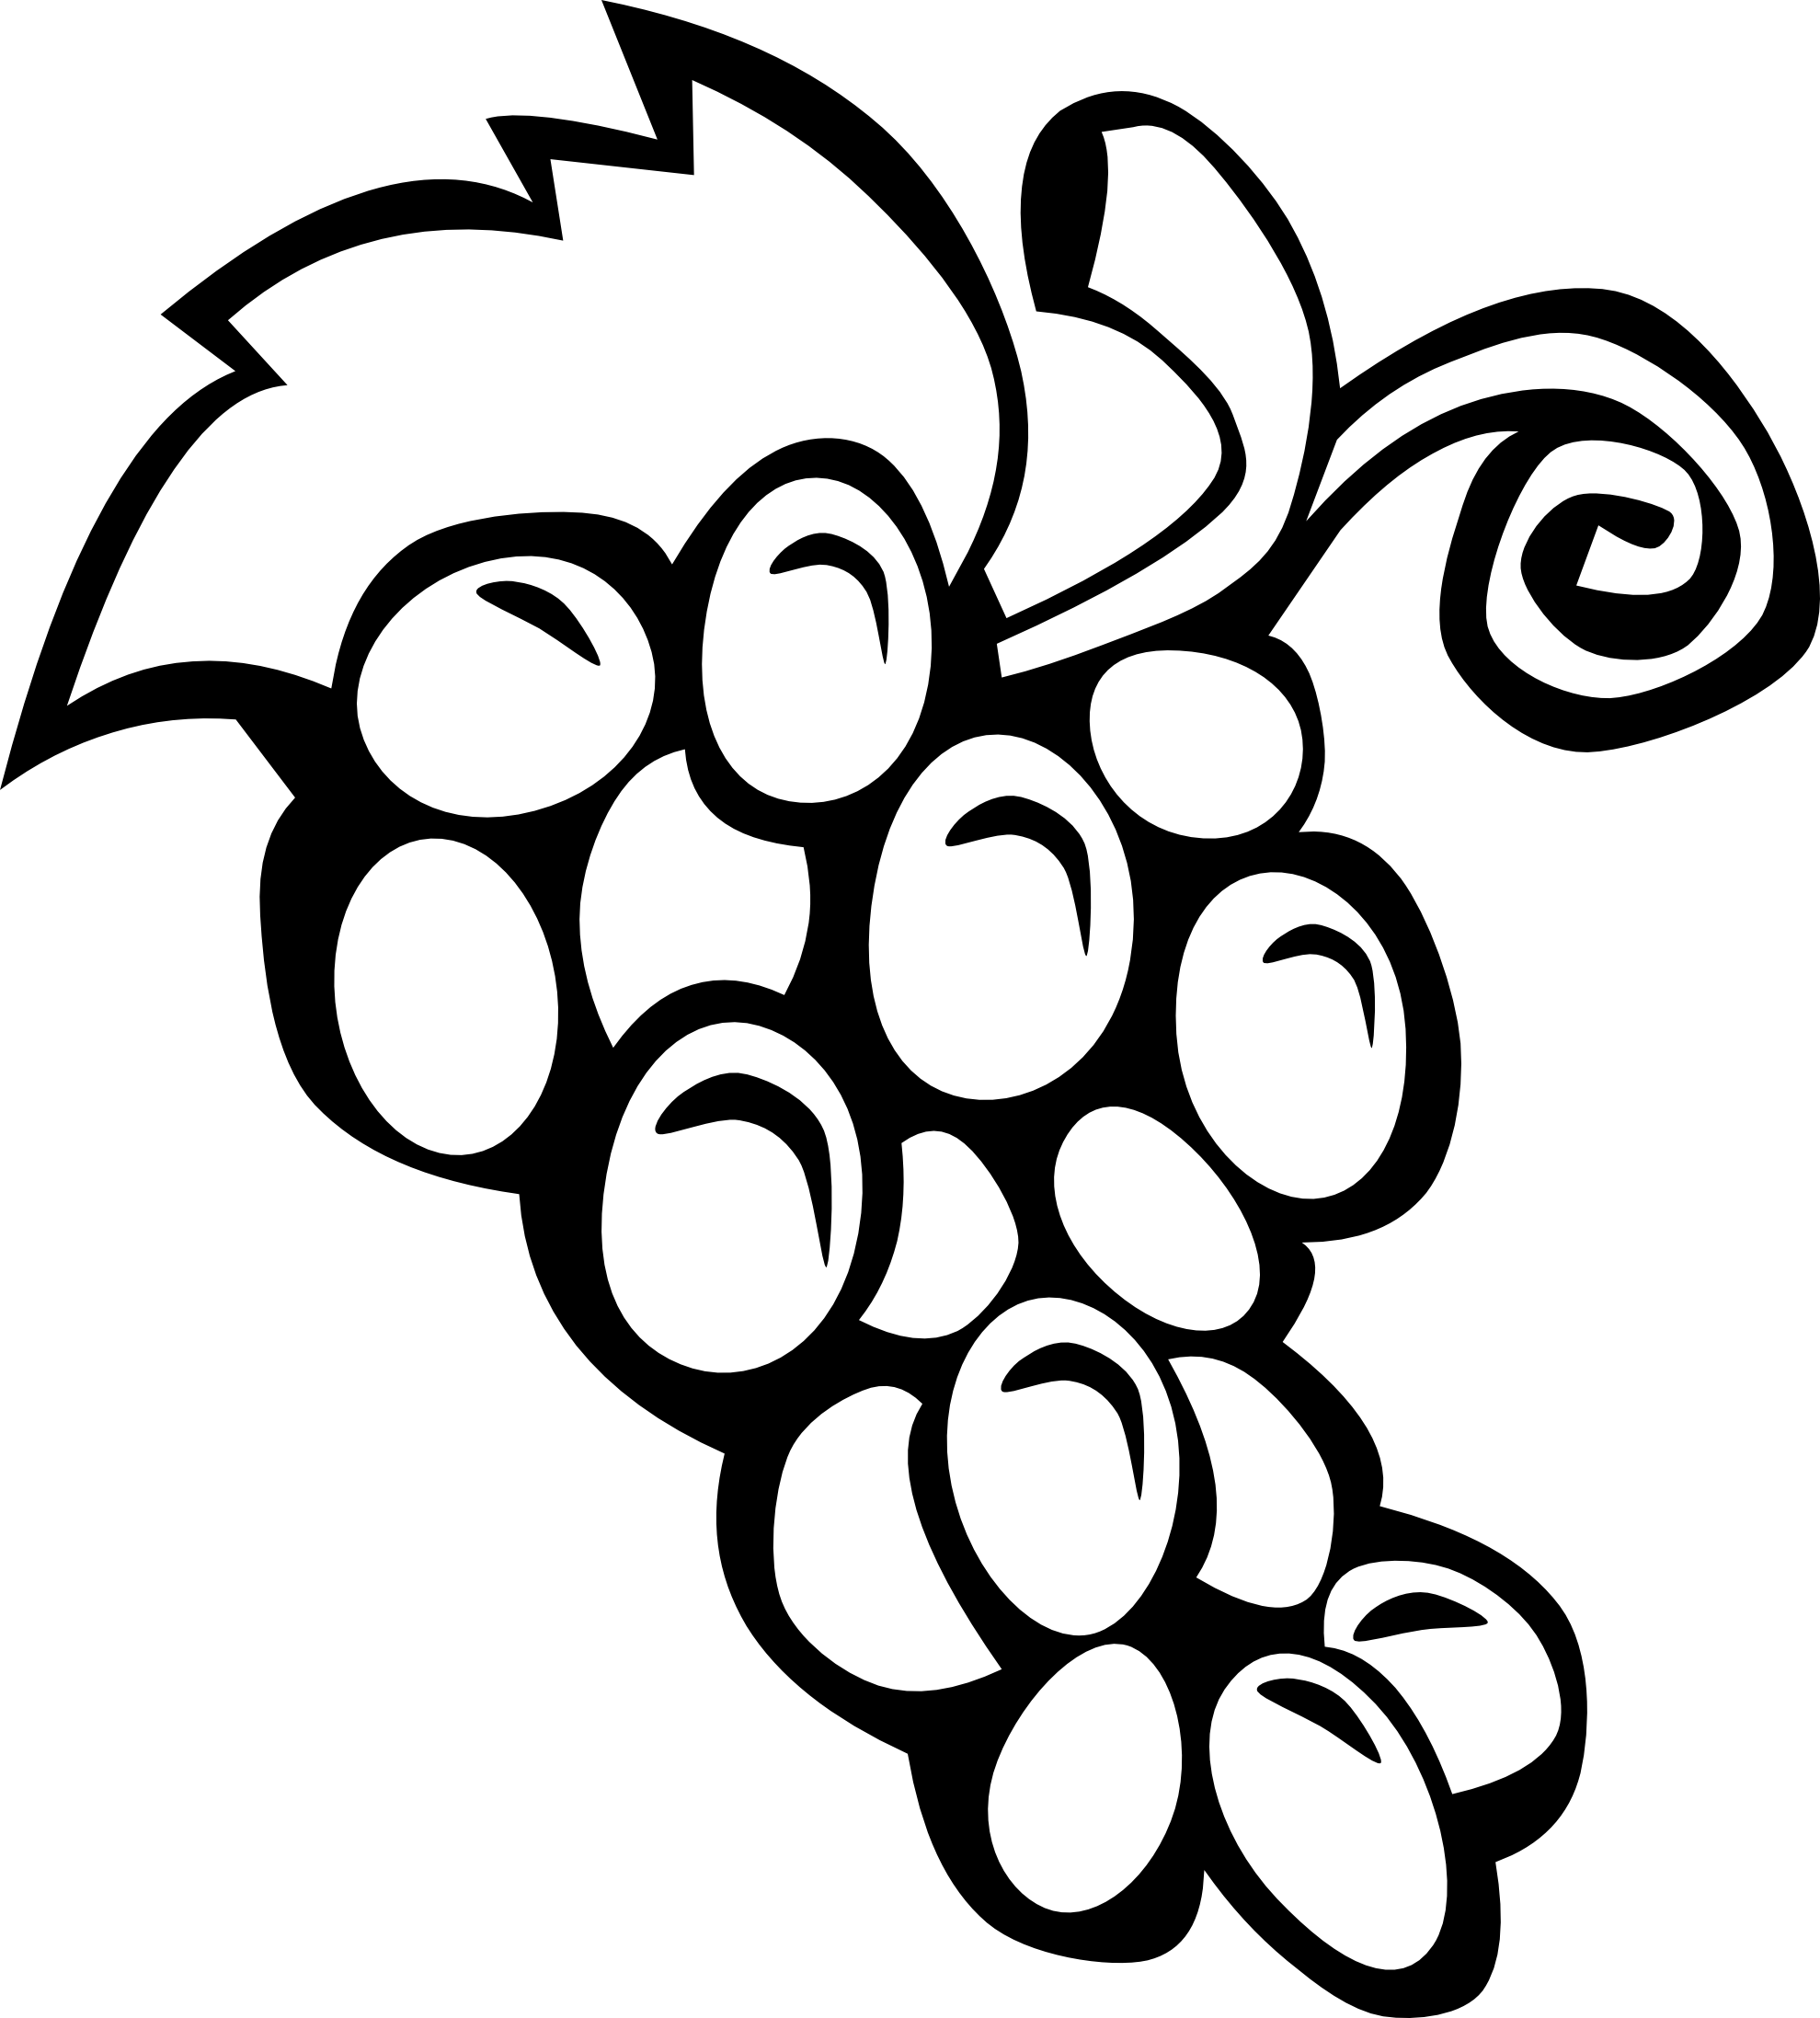 Vegetable black and white clipart - PNG Vegetables And Fruits Black And White